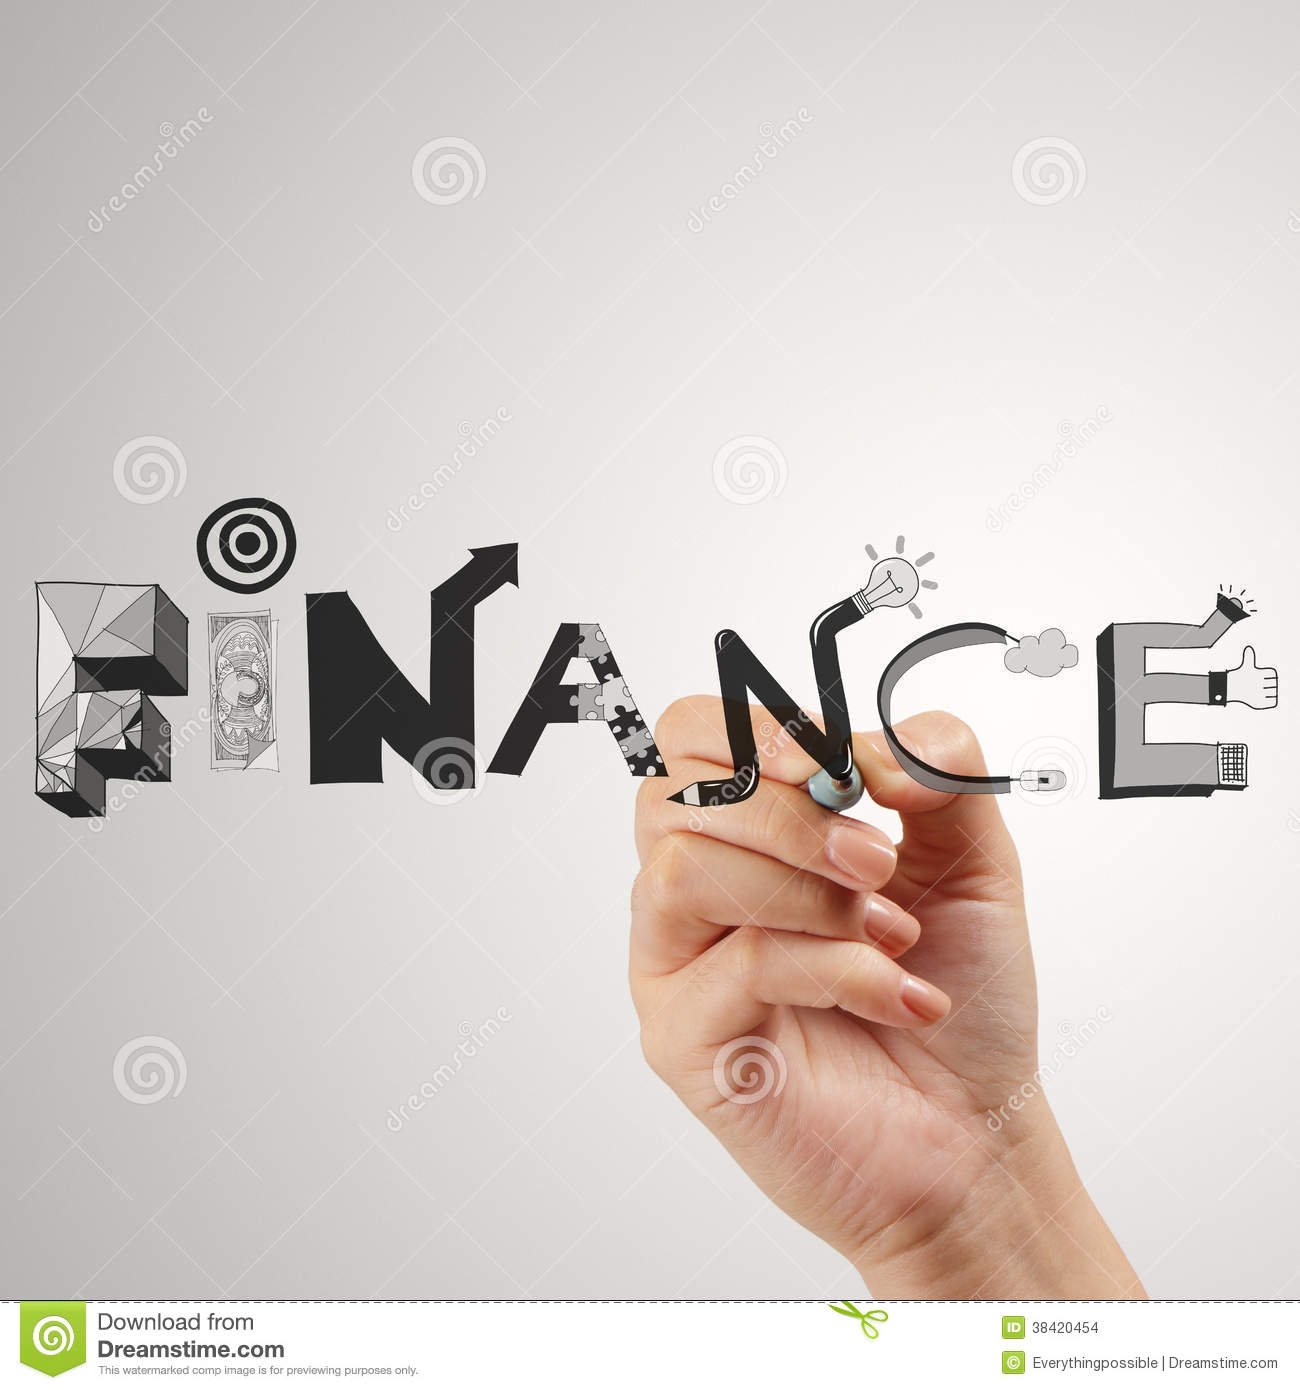 Finance Words: Business Hand Drawing Graphic Design FINANCE Stock